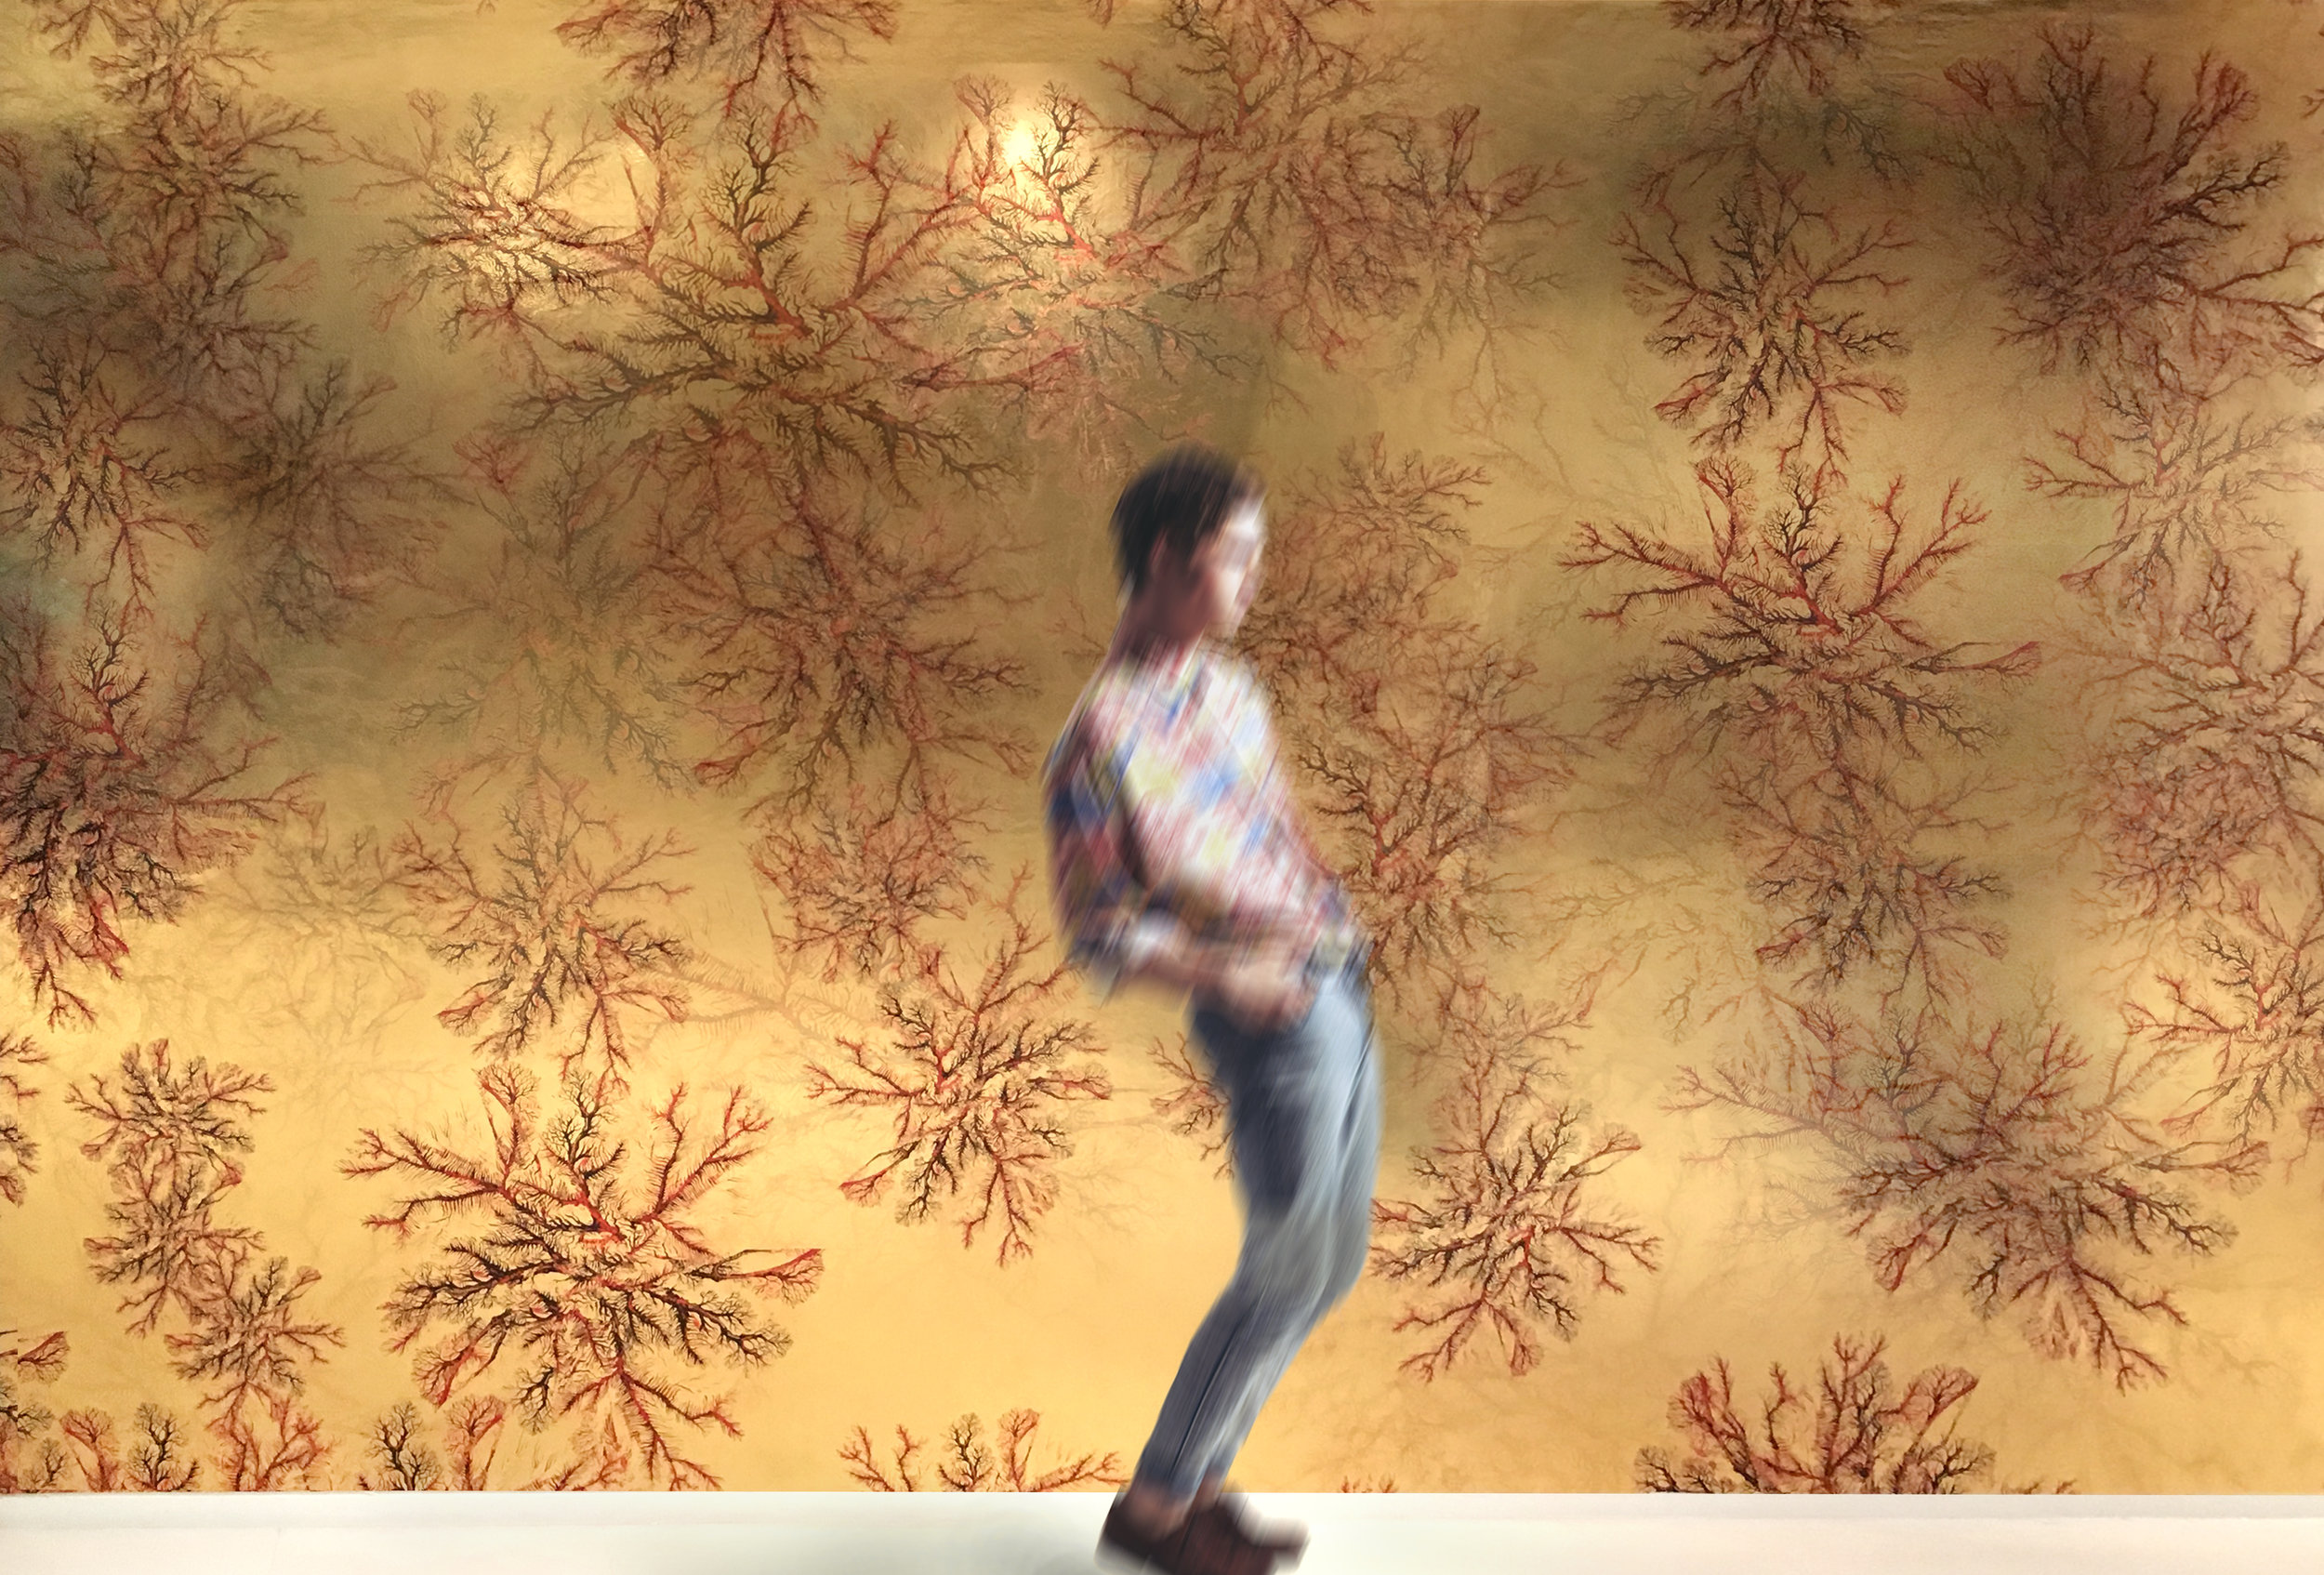 Mert Özgen  Coral Veins wallcovering (Gold metallic)  Available in minimums of 100 square feet.